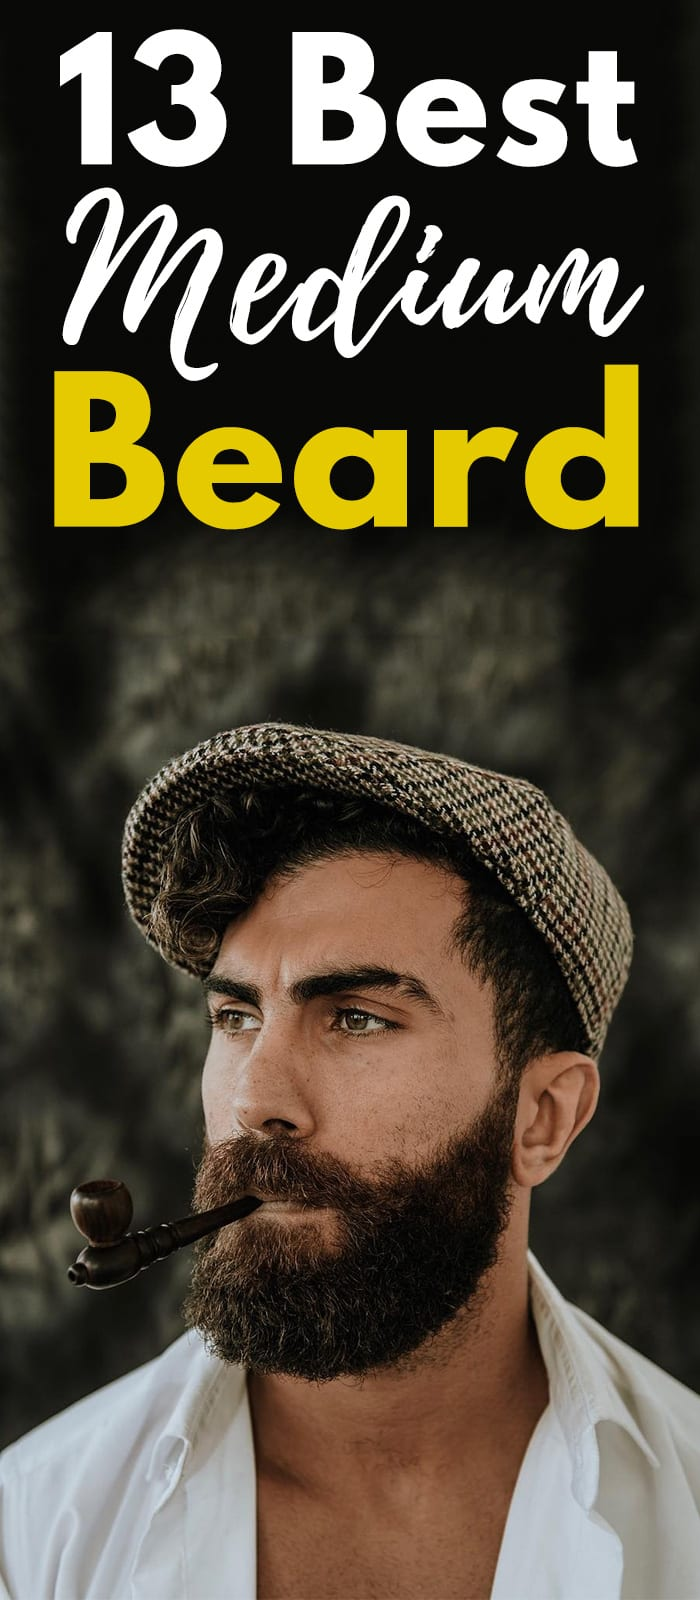 13 Best Medium Beard.